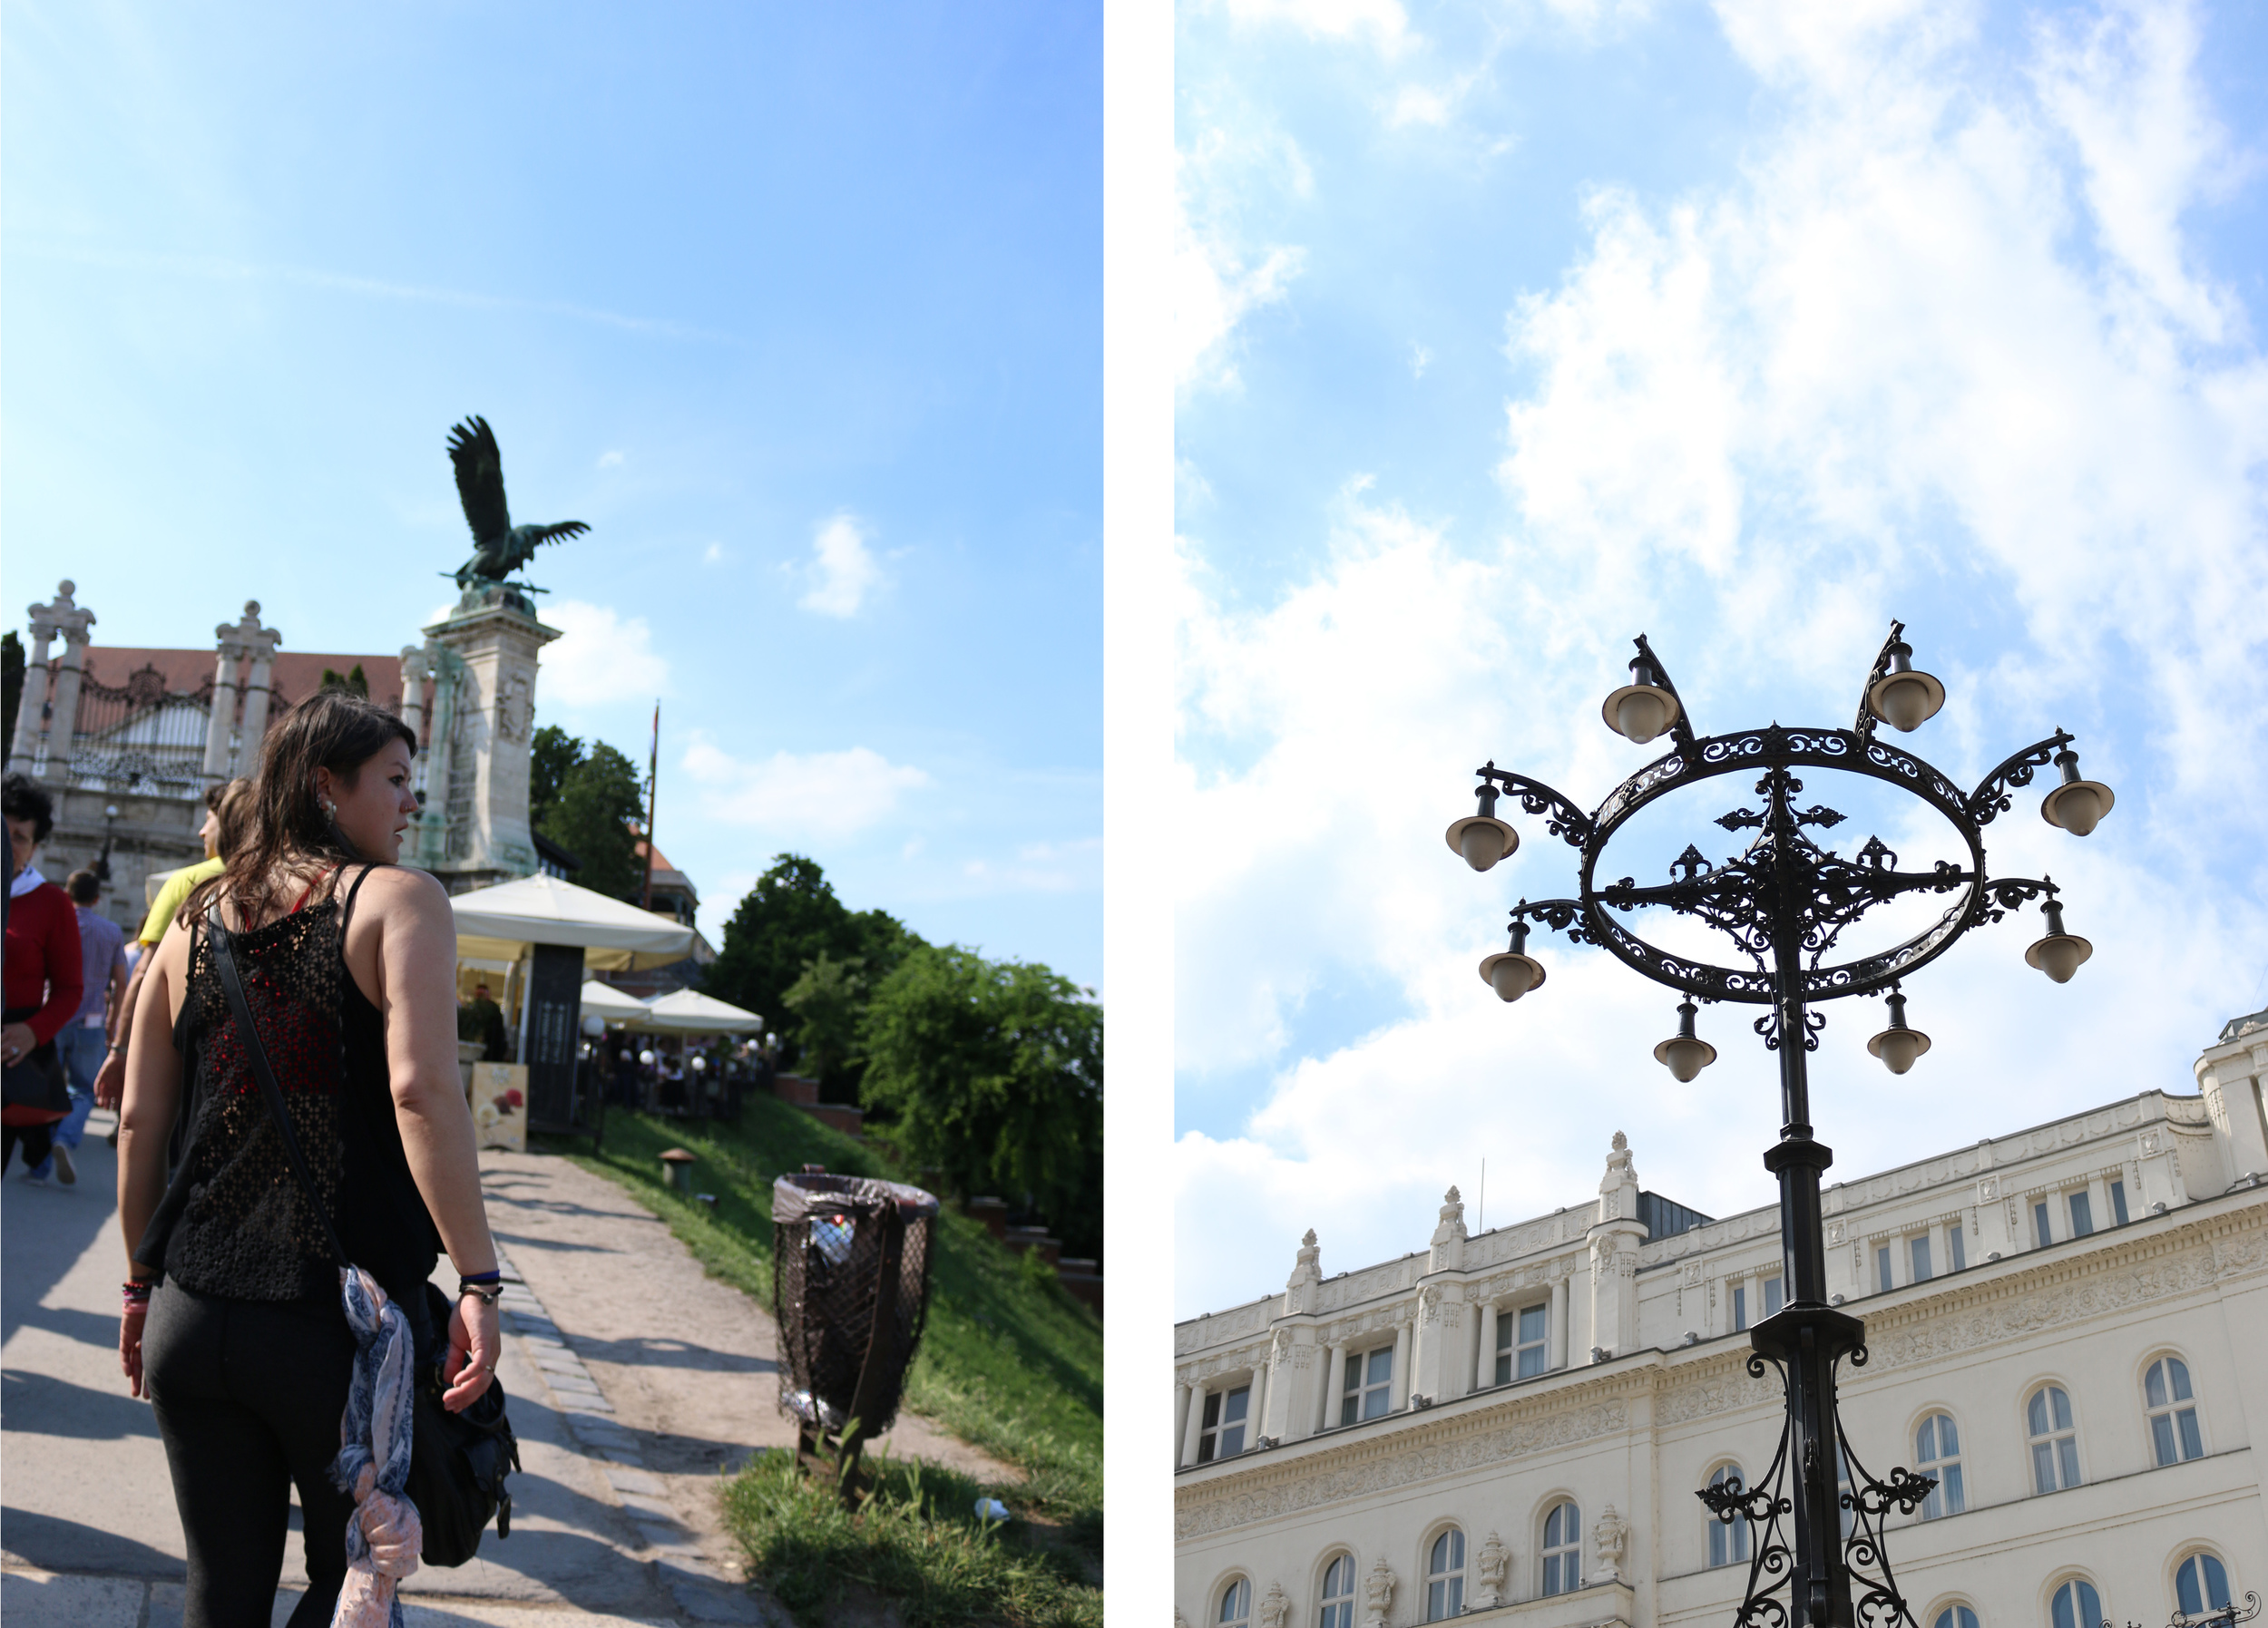 Walking up to the Buda castle